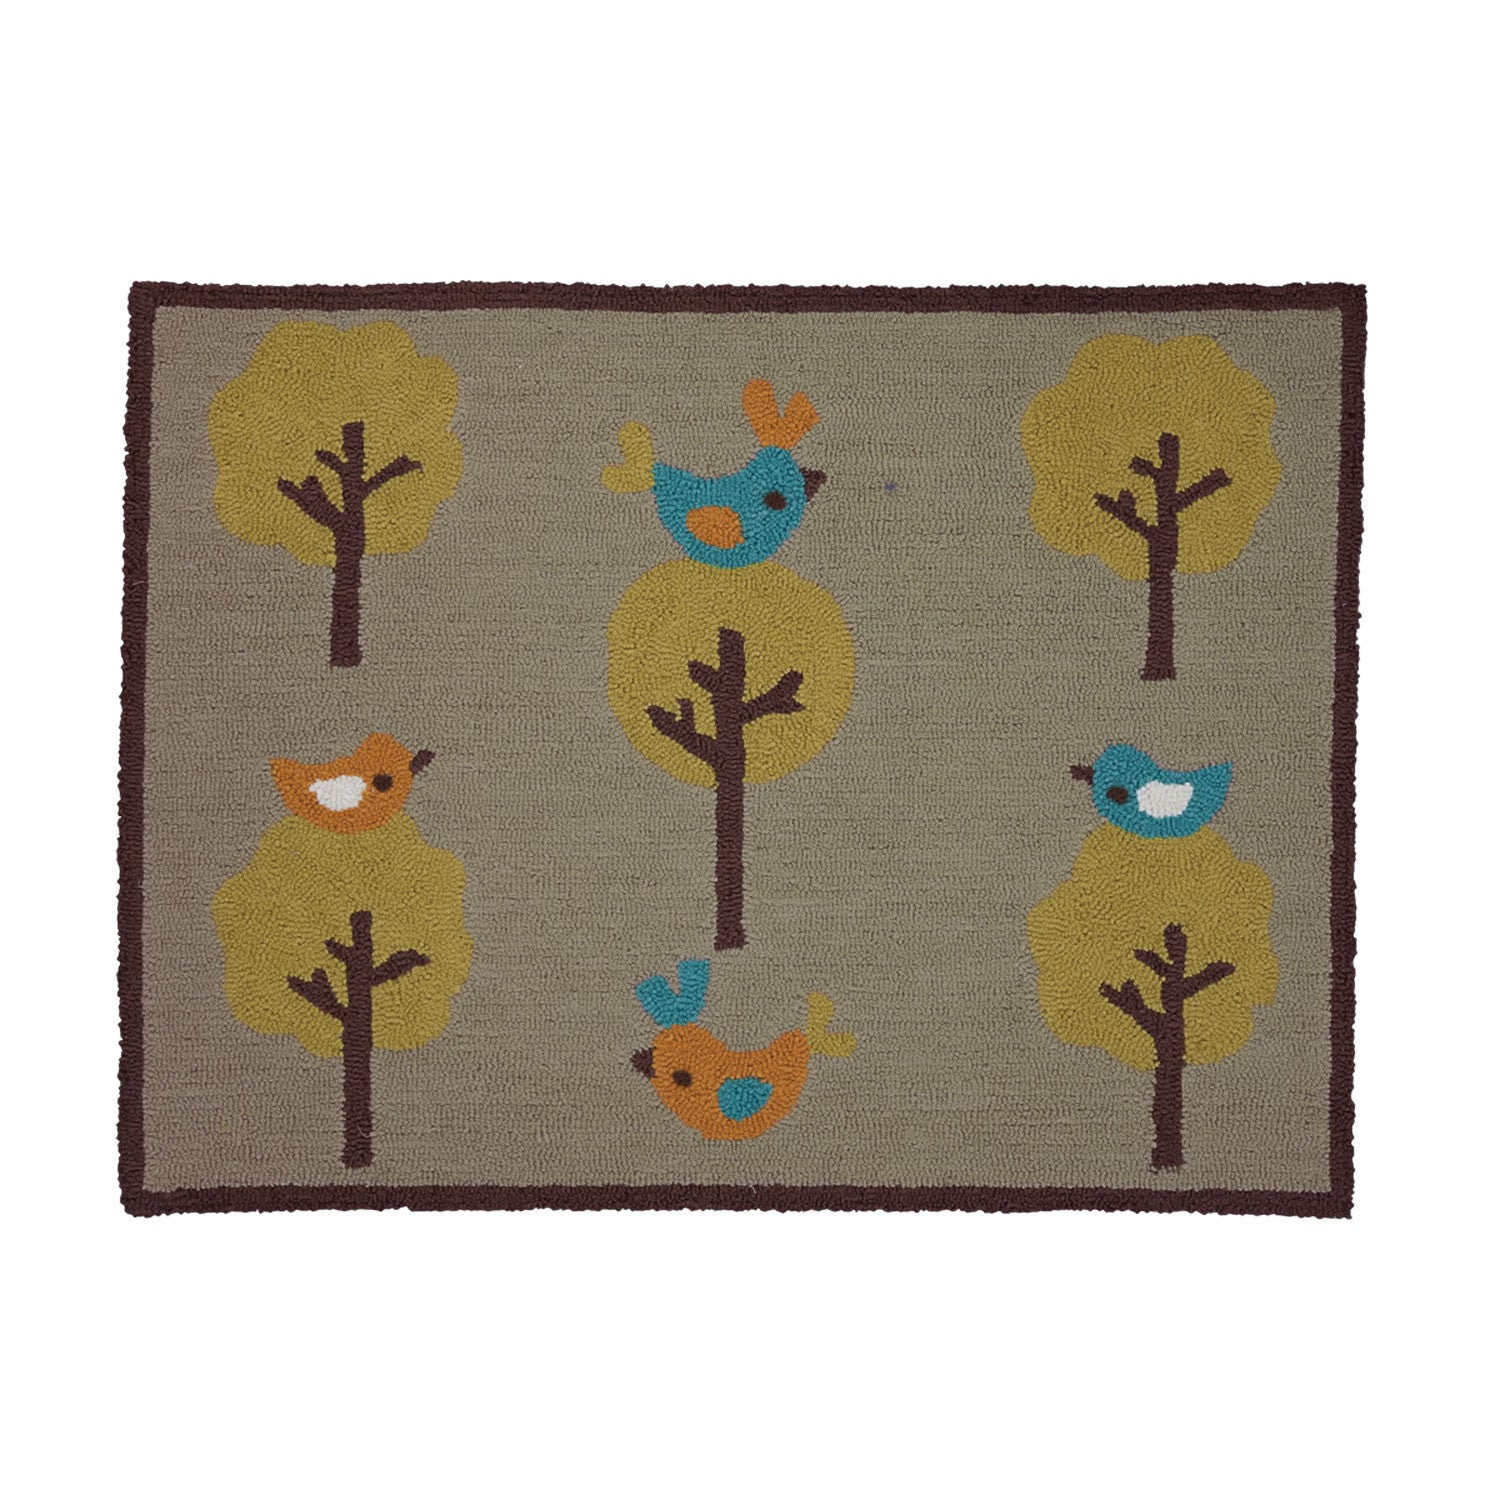 Rug - Tree - Living Textiles Co.